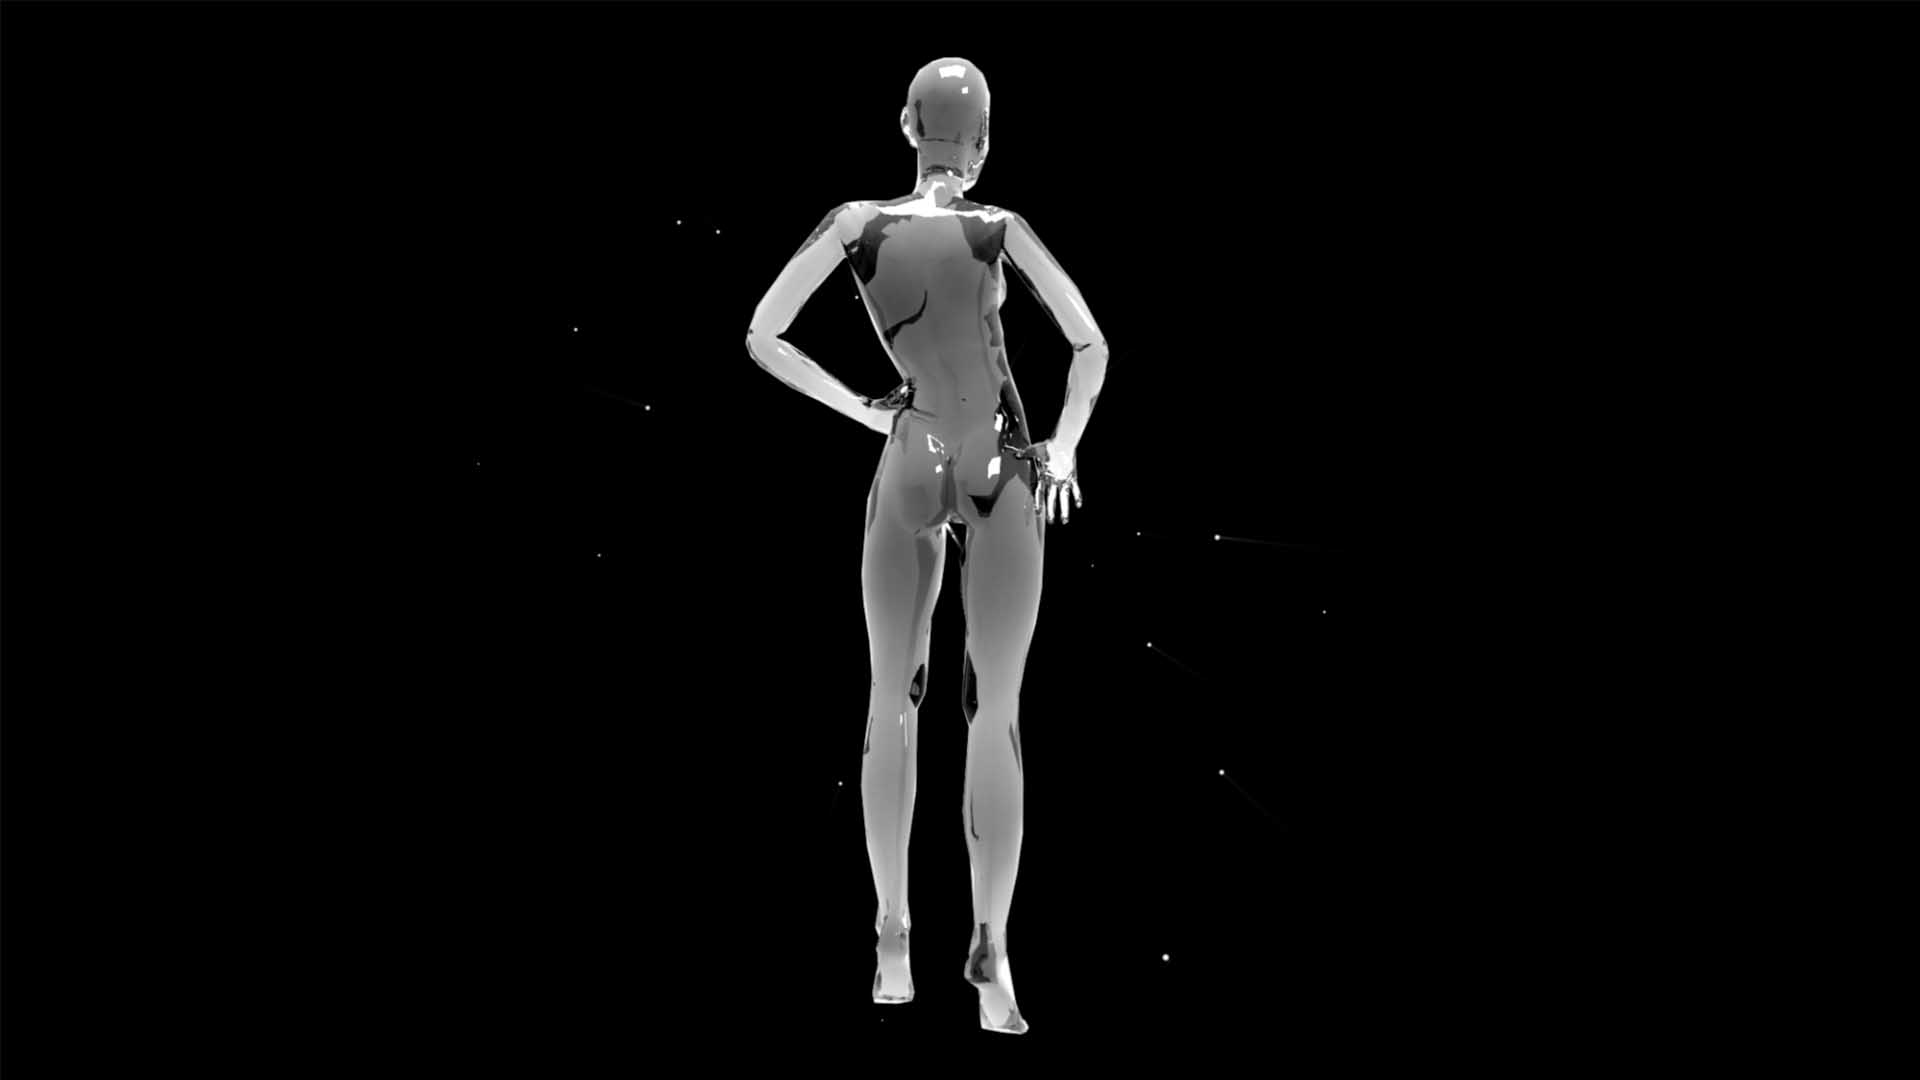 Liquid_Geometry_Statue_Isolated_on_Black_Background_Video_VJ_loop Girl